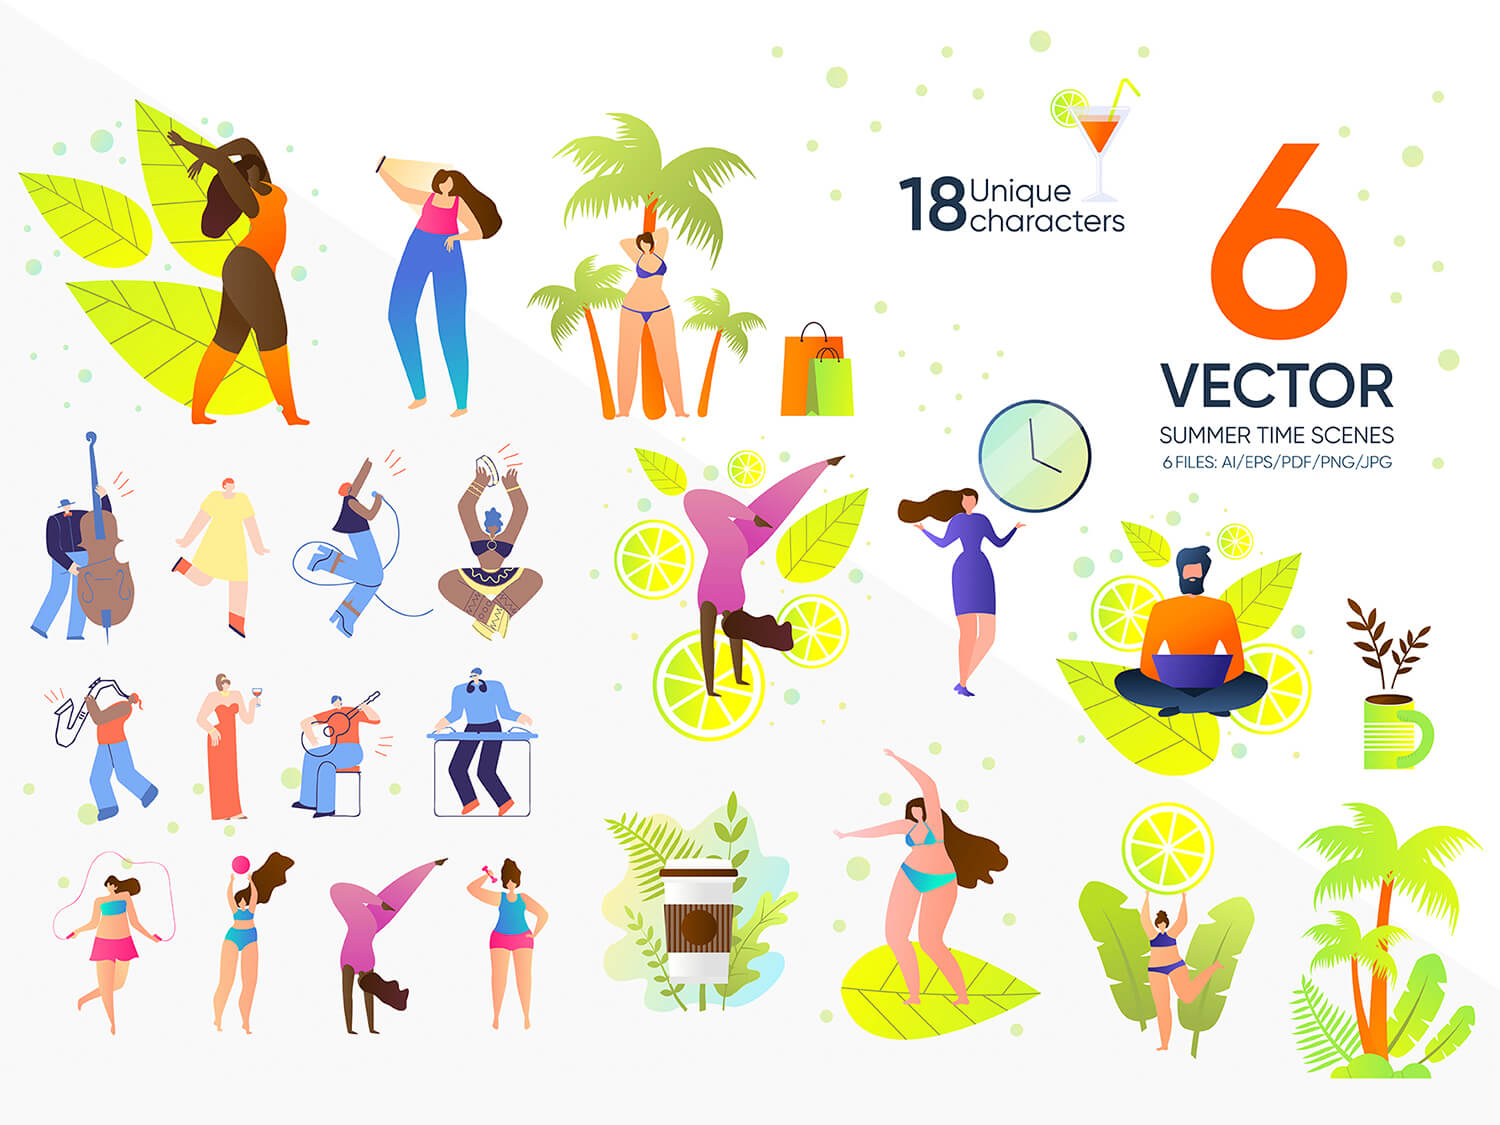 24-in-1 Flaticons Bundle: 6 Summer Time Vector Scenes